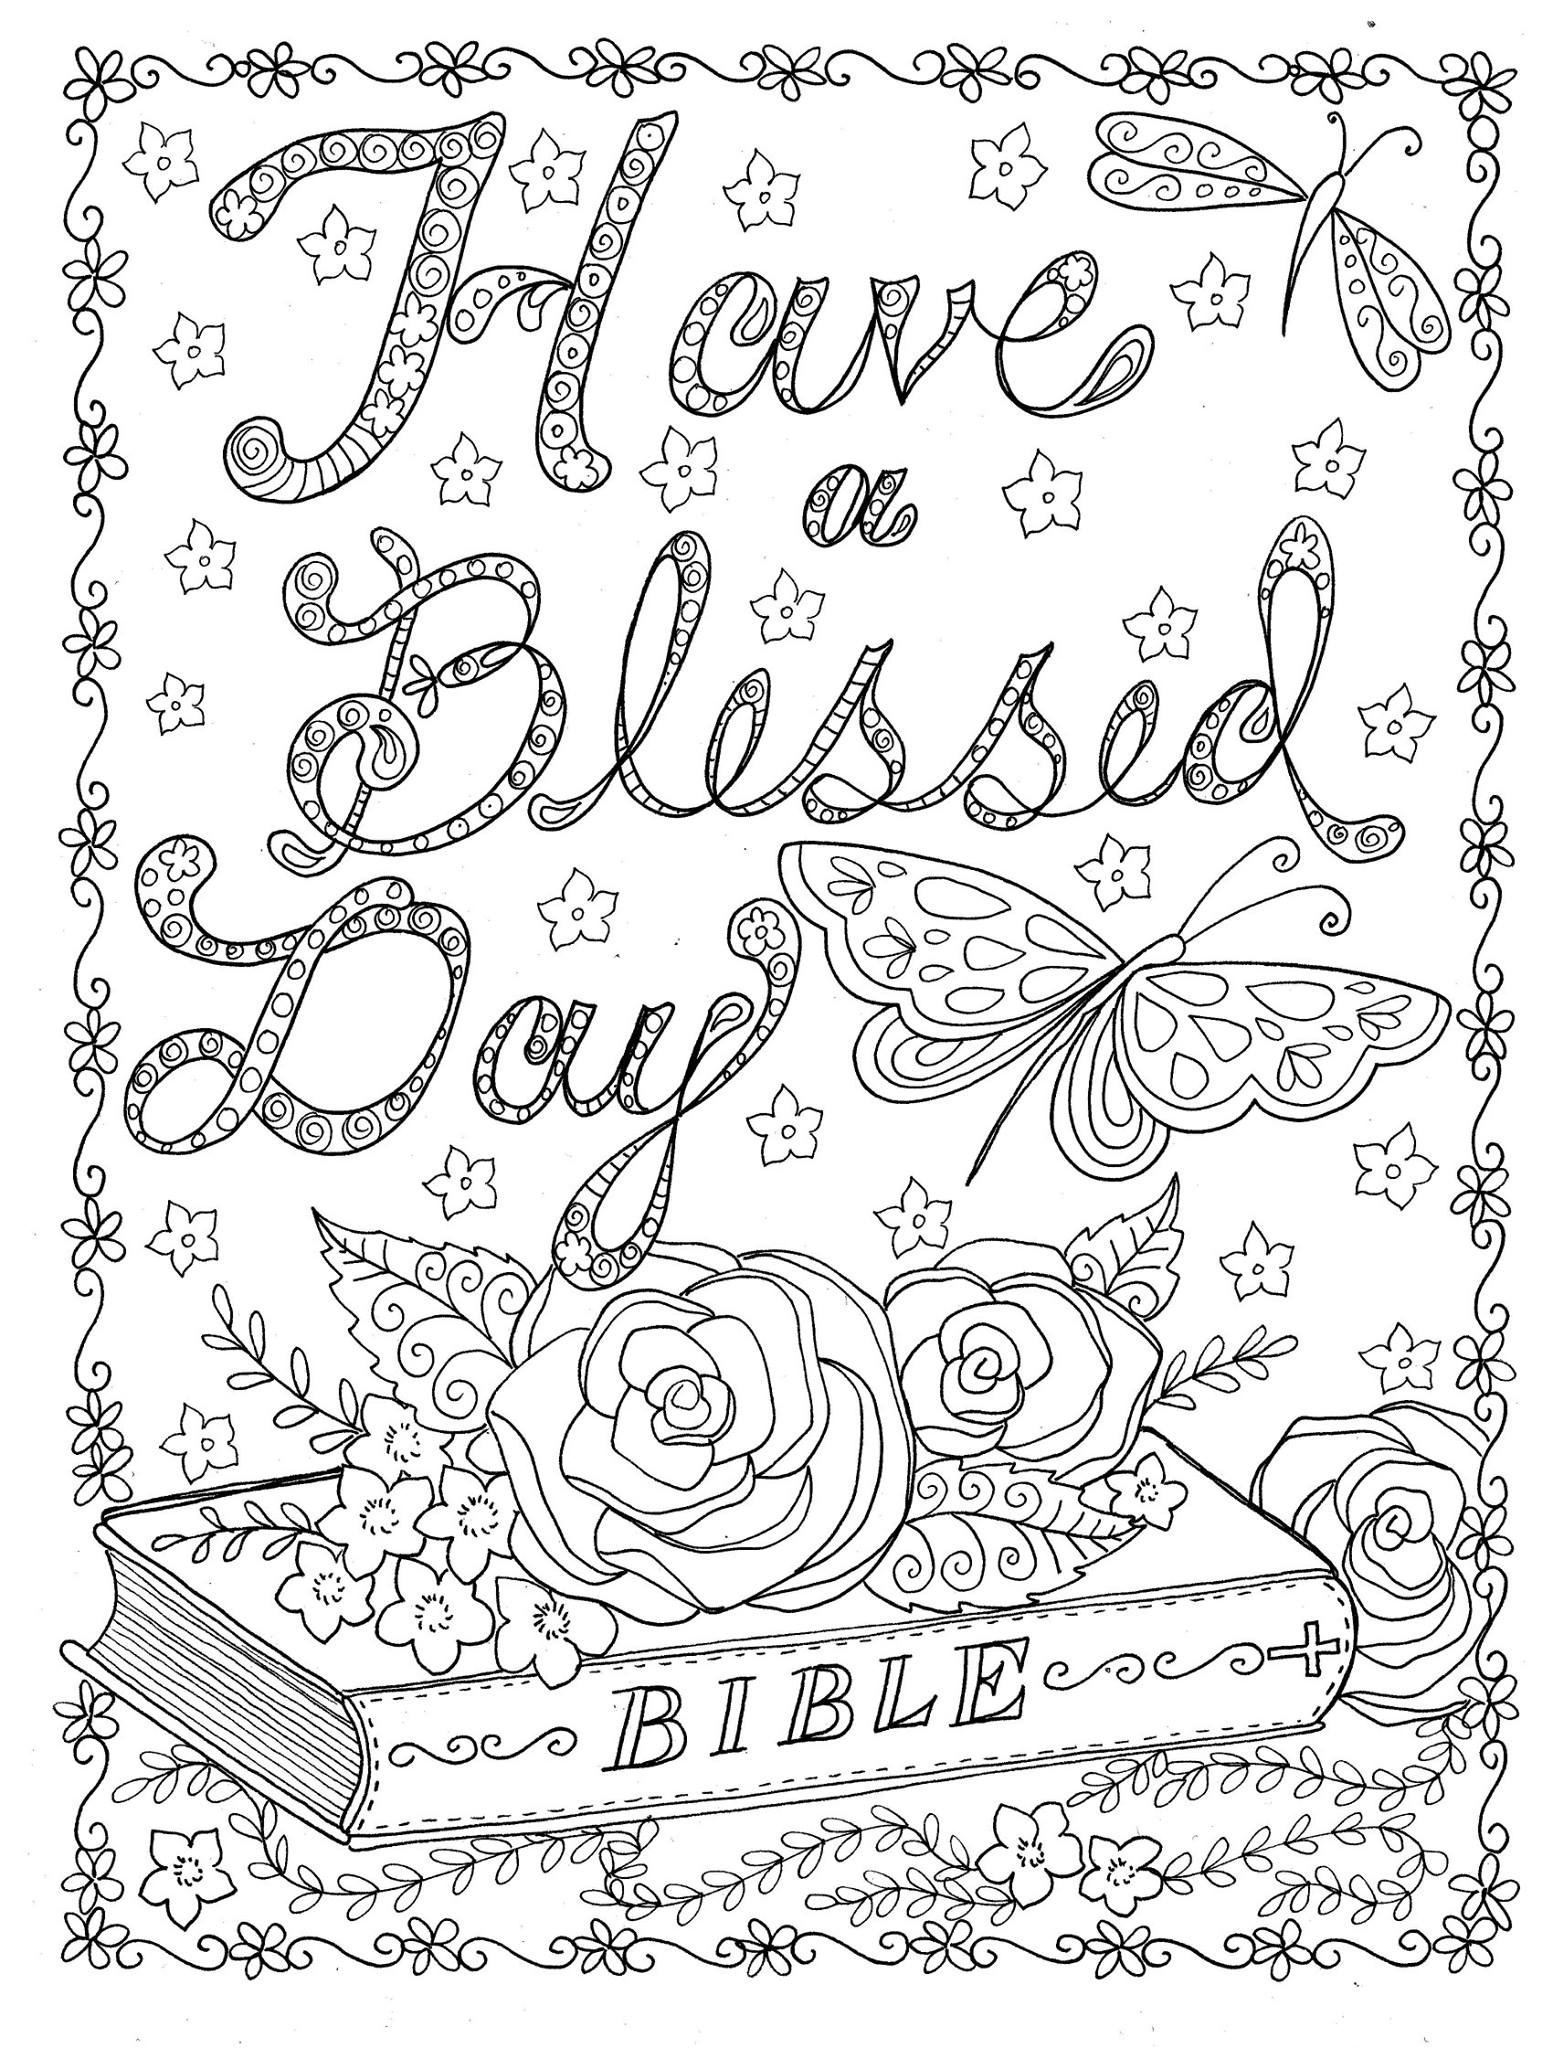 Printable Complex Coloring Pages - Plex Coloring Sheets for Teens Coloring Pages